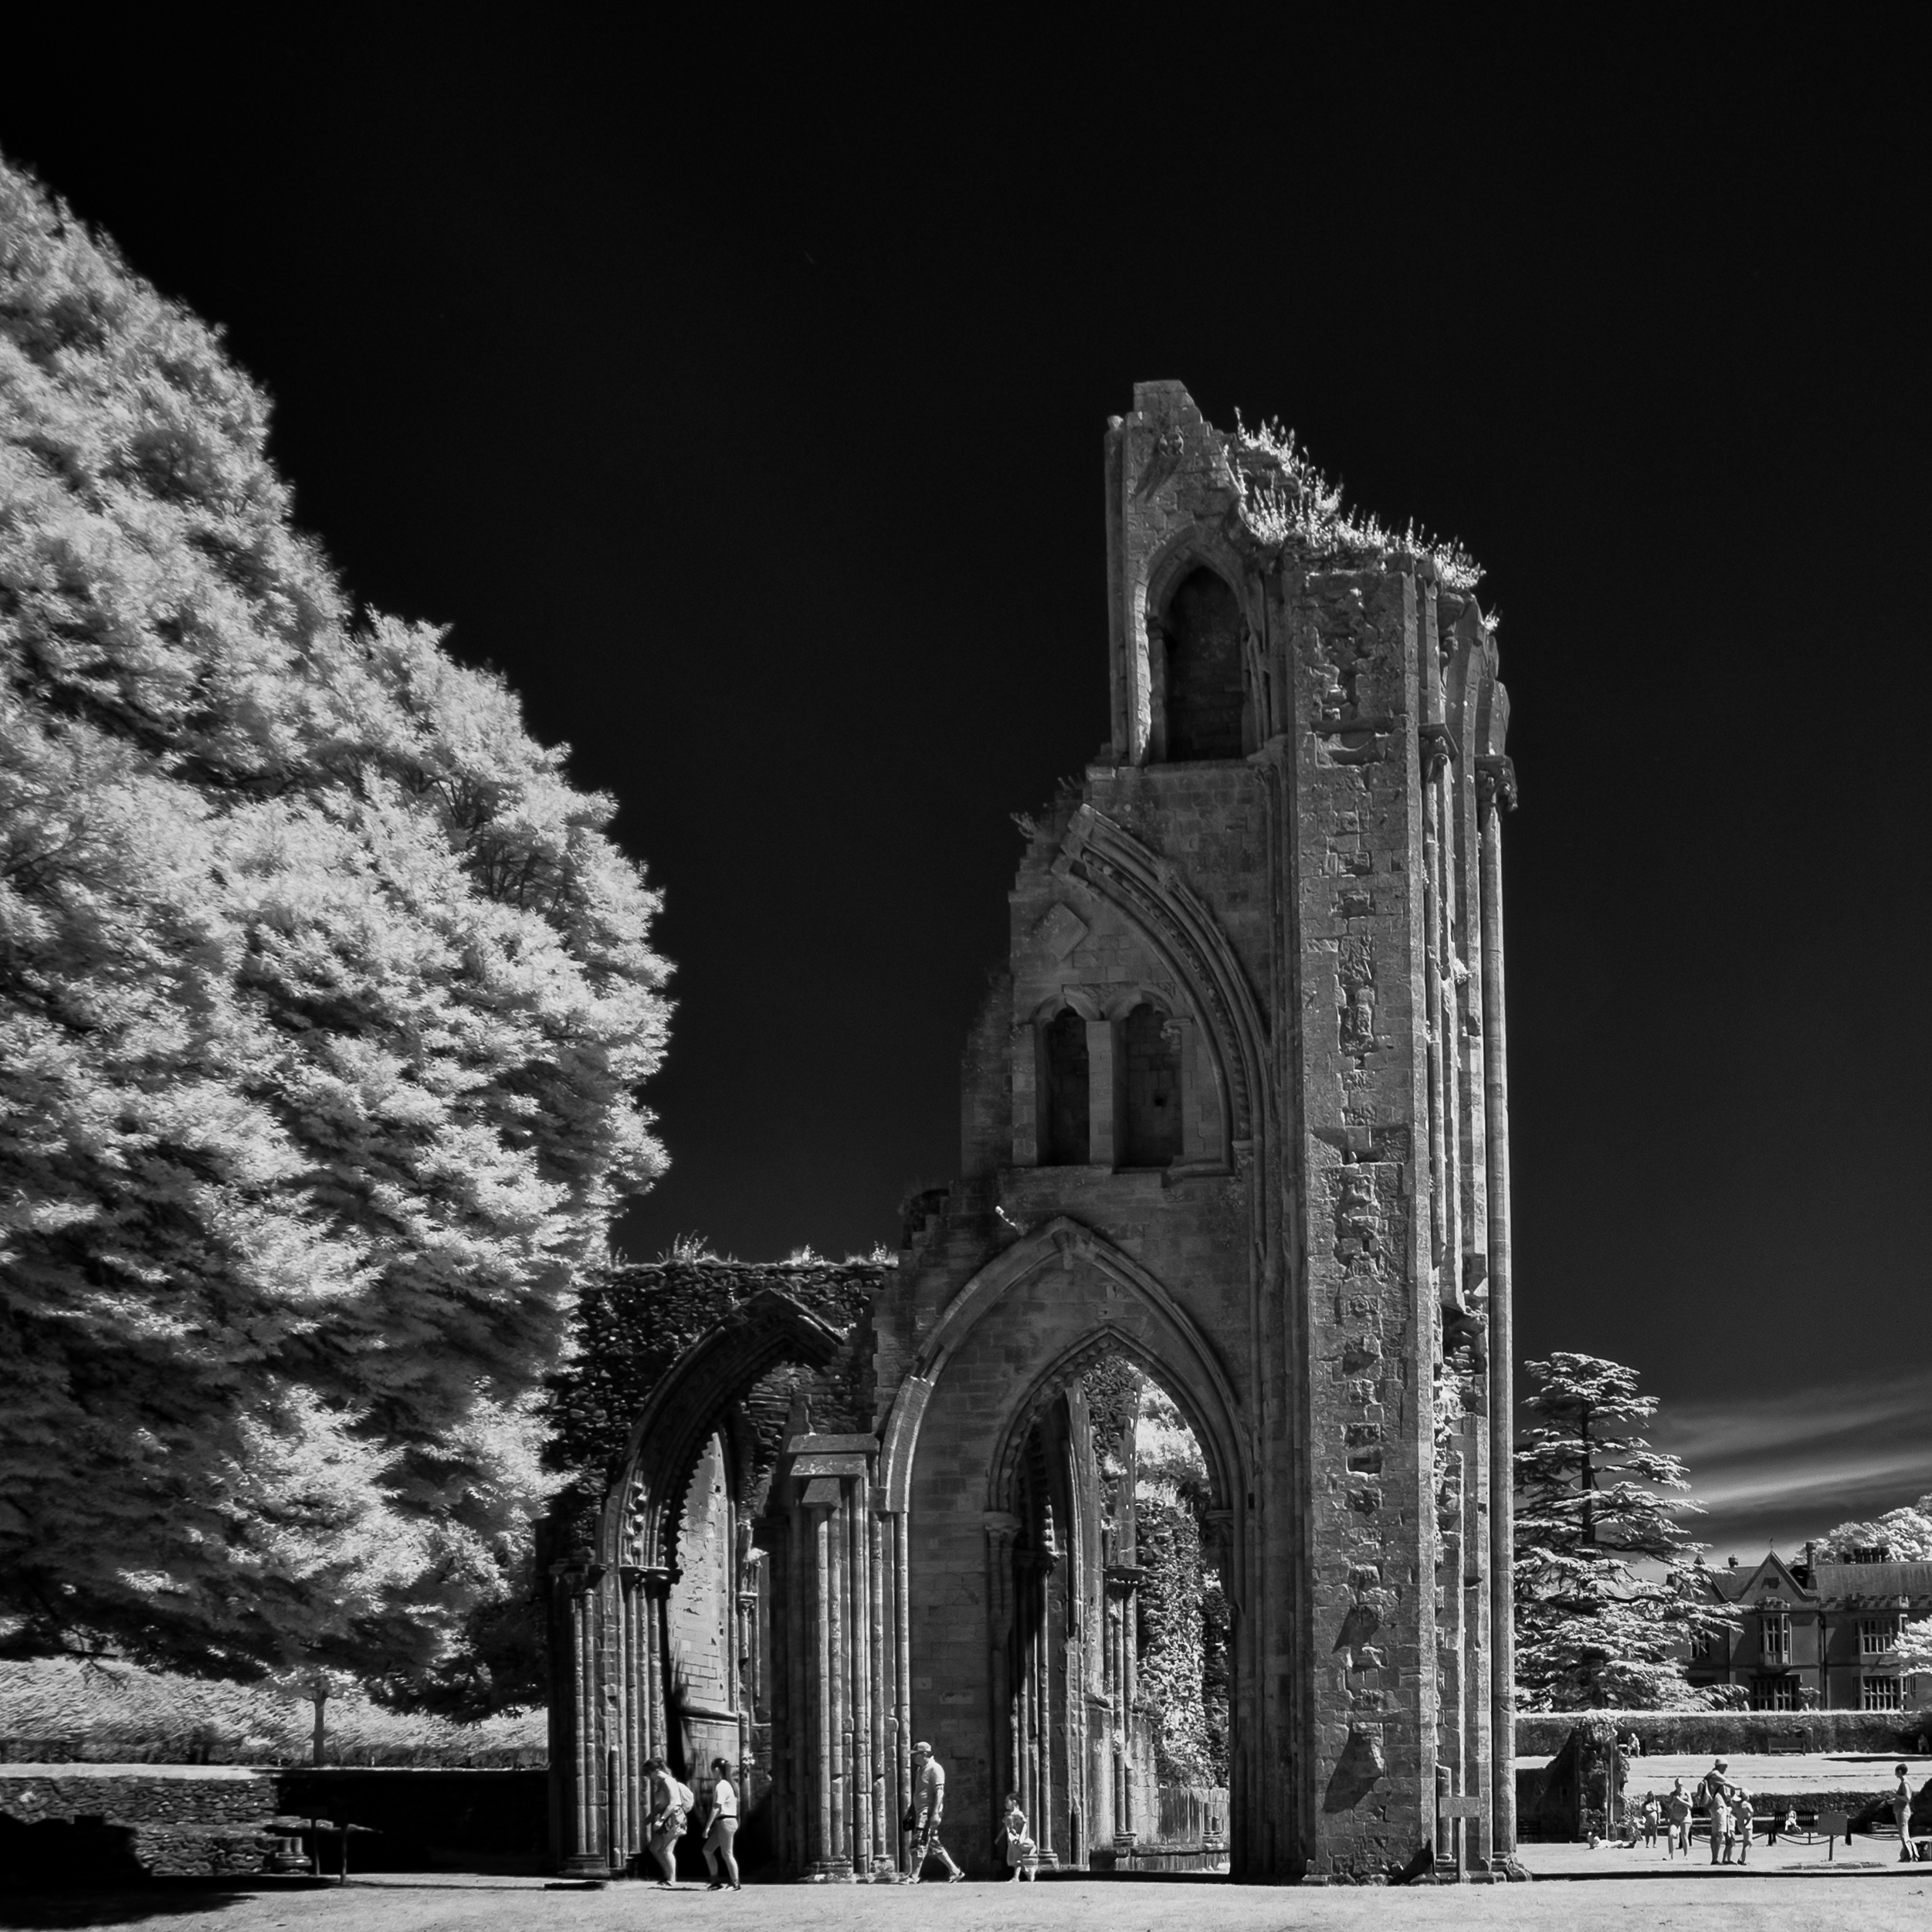 Get great results by converting an older digital camera to infrared - Amateur Photographer